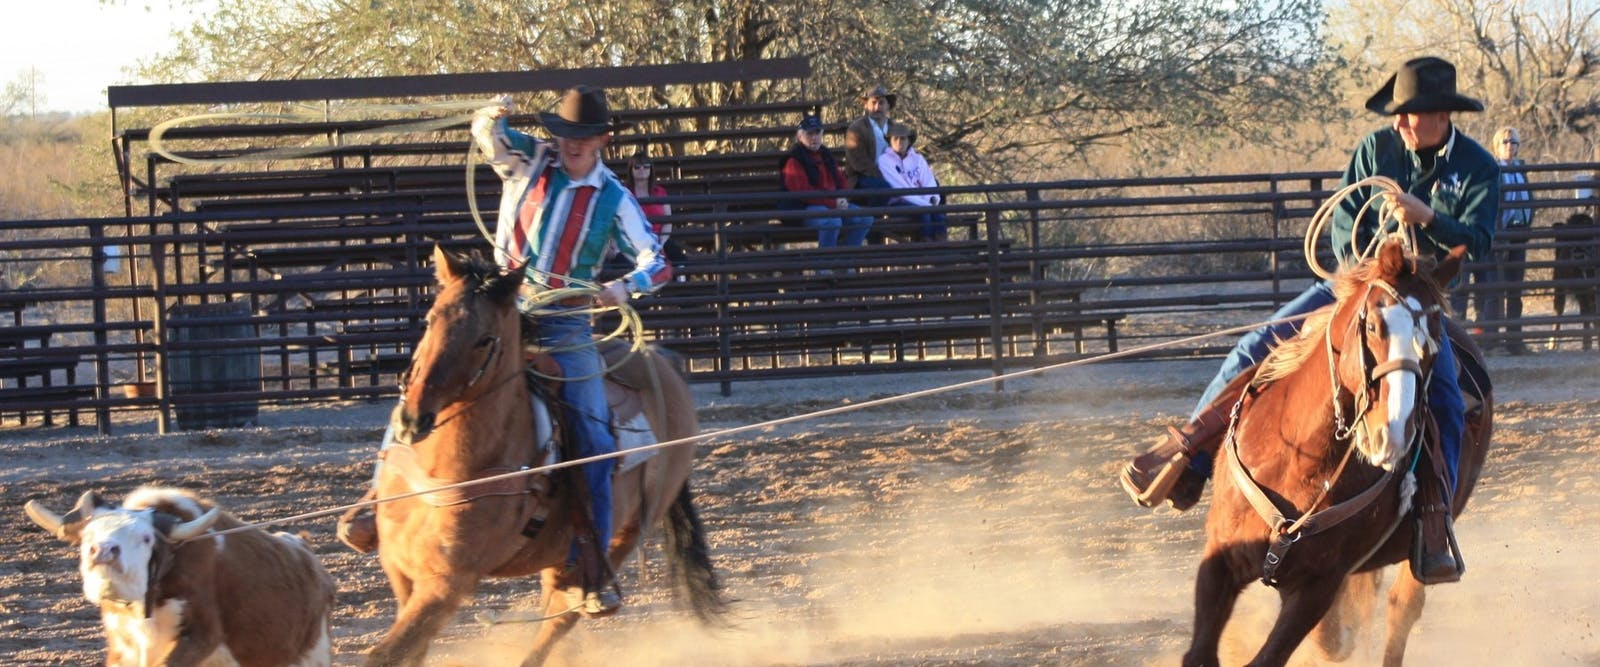 Rodeo At White Stallion Ranch, Arizona